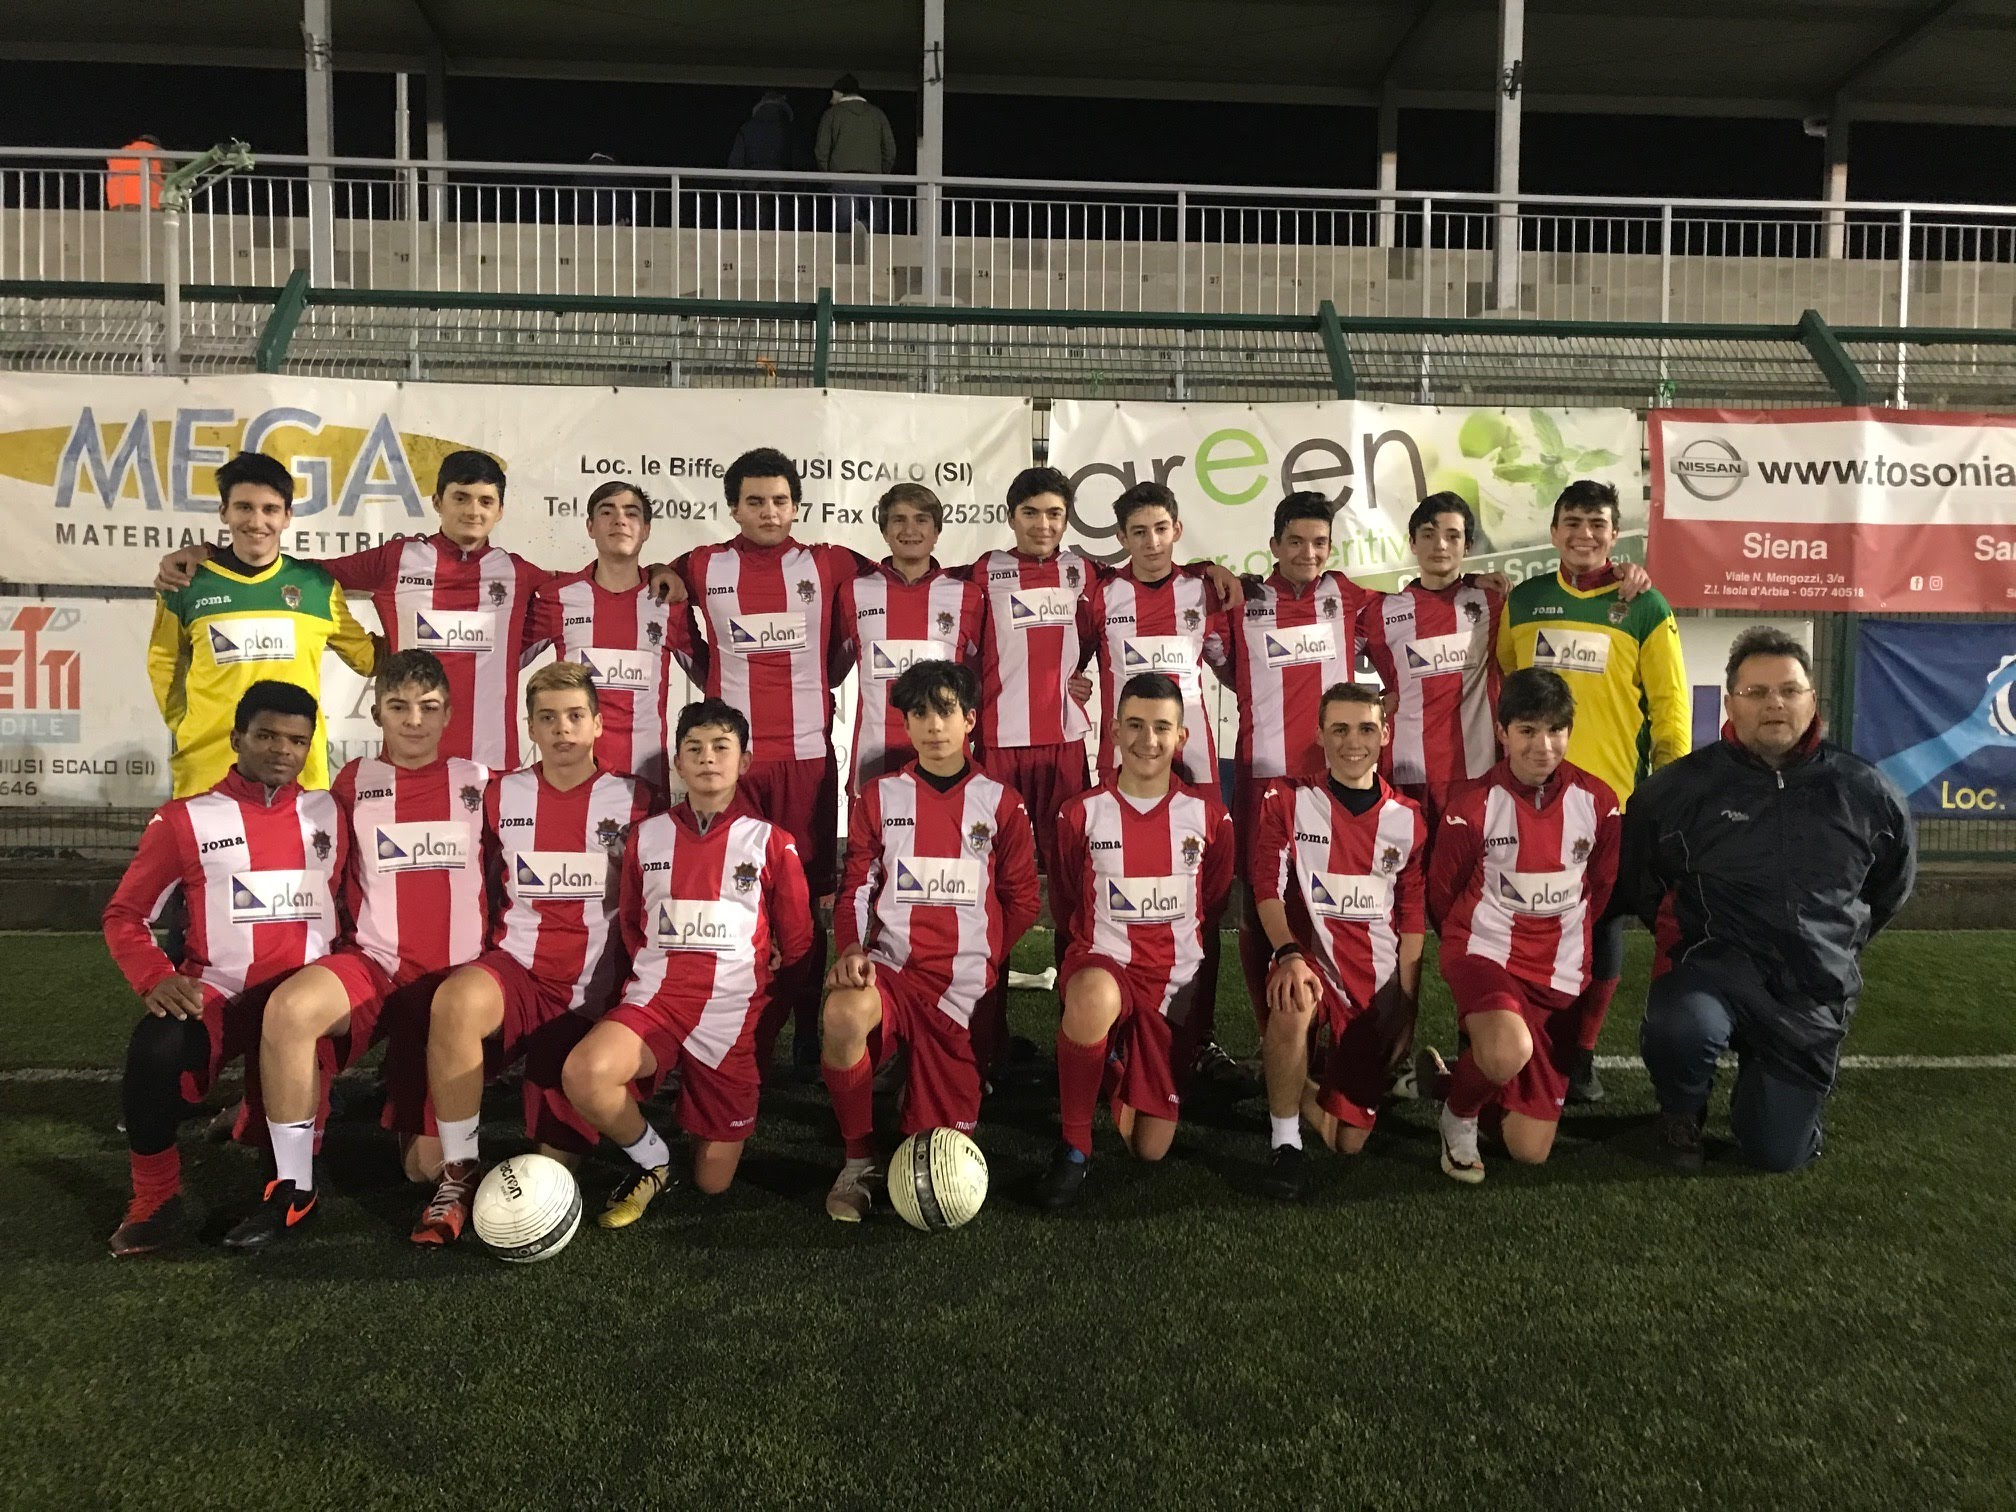 ALLIEVI B UNDER 16 2004